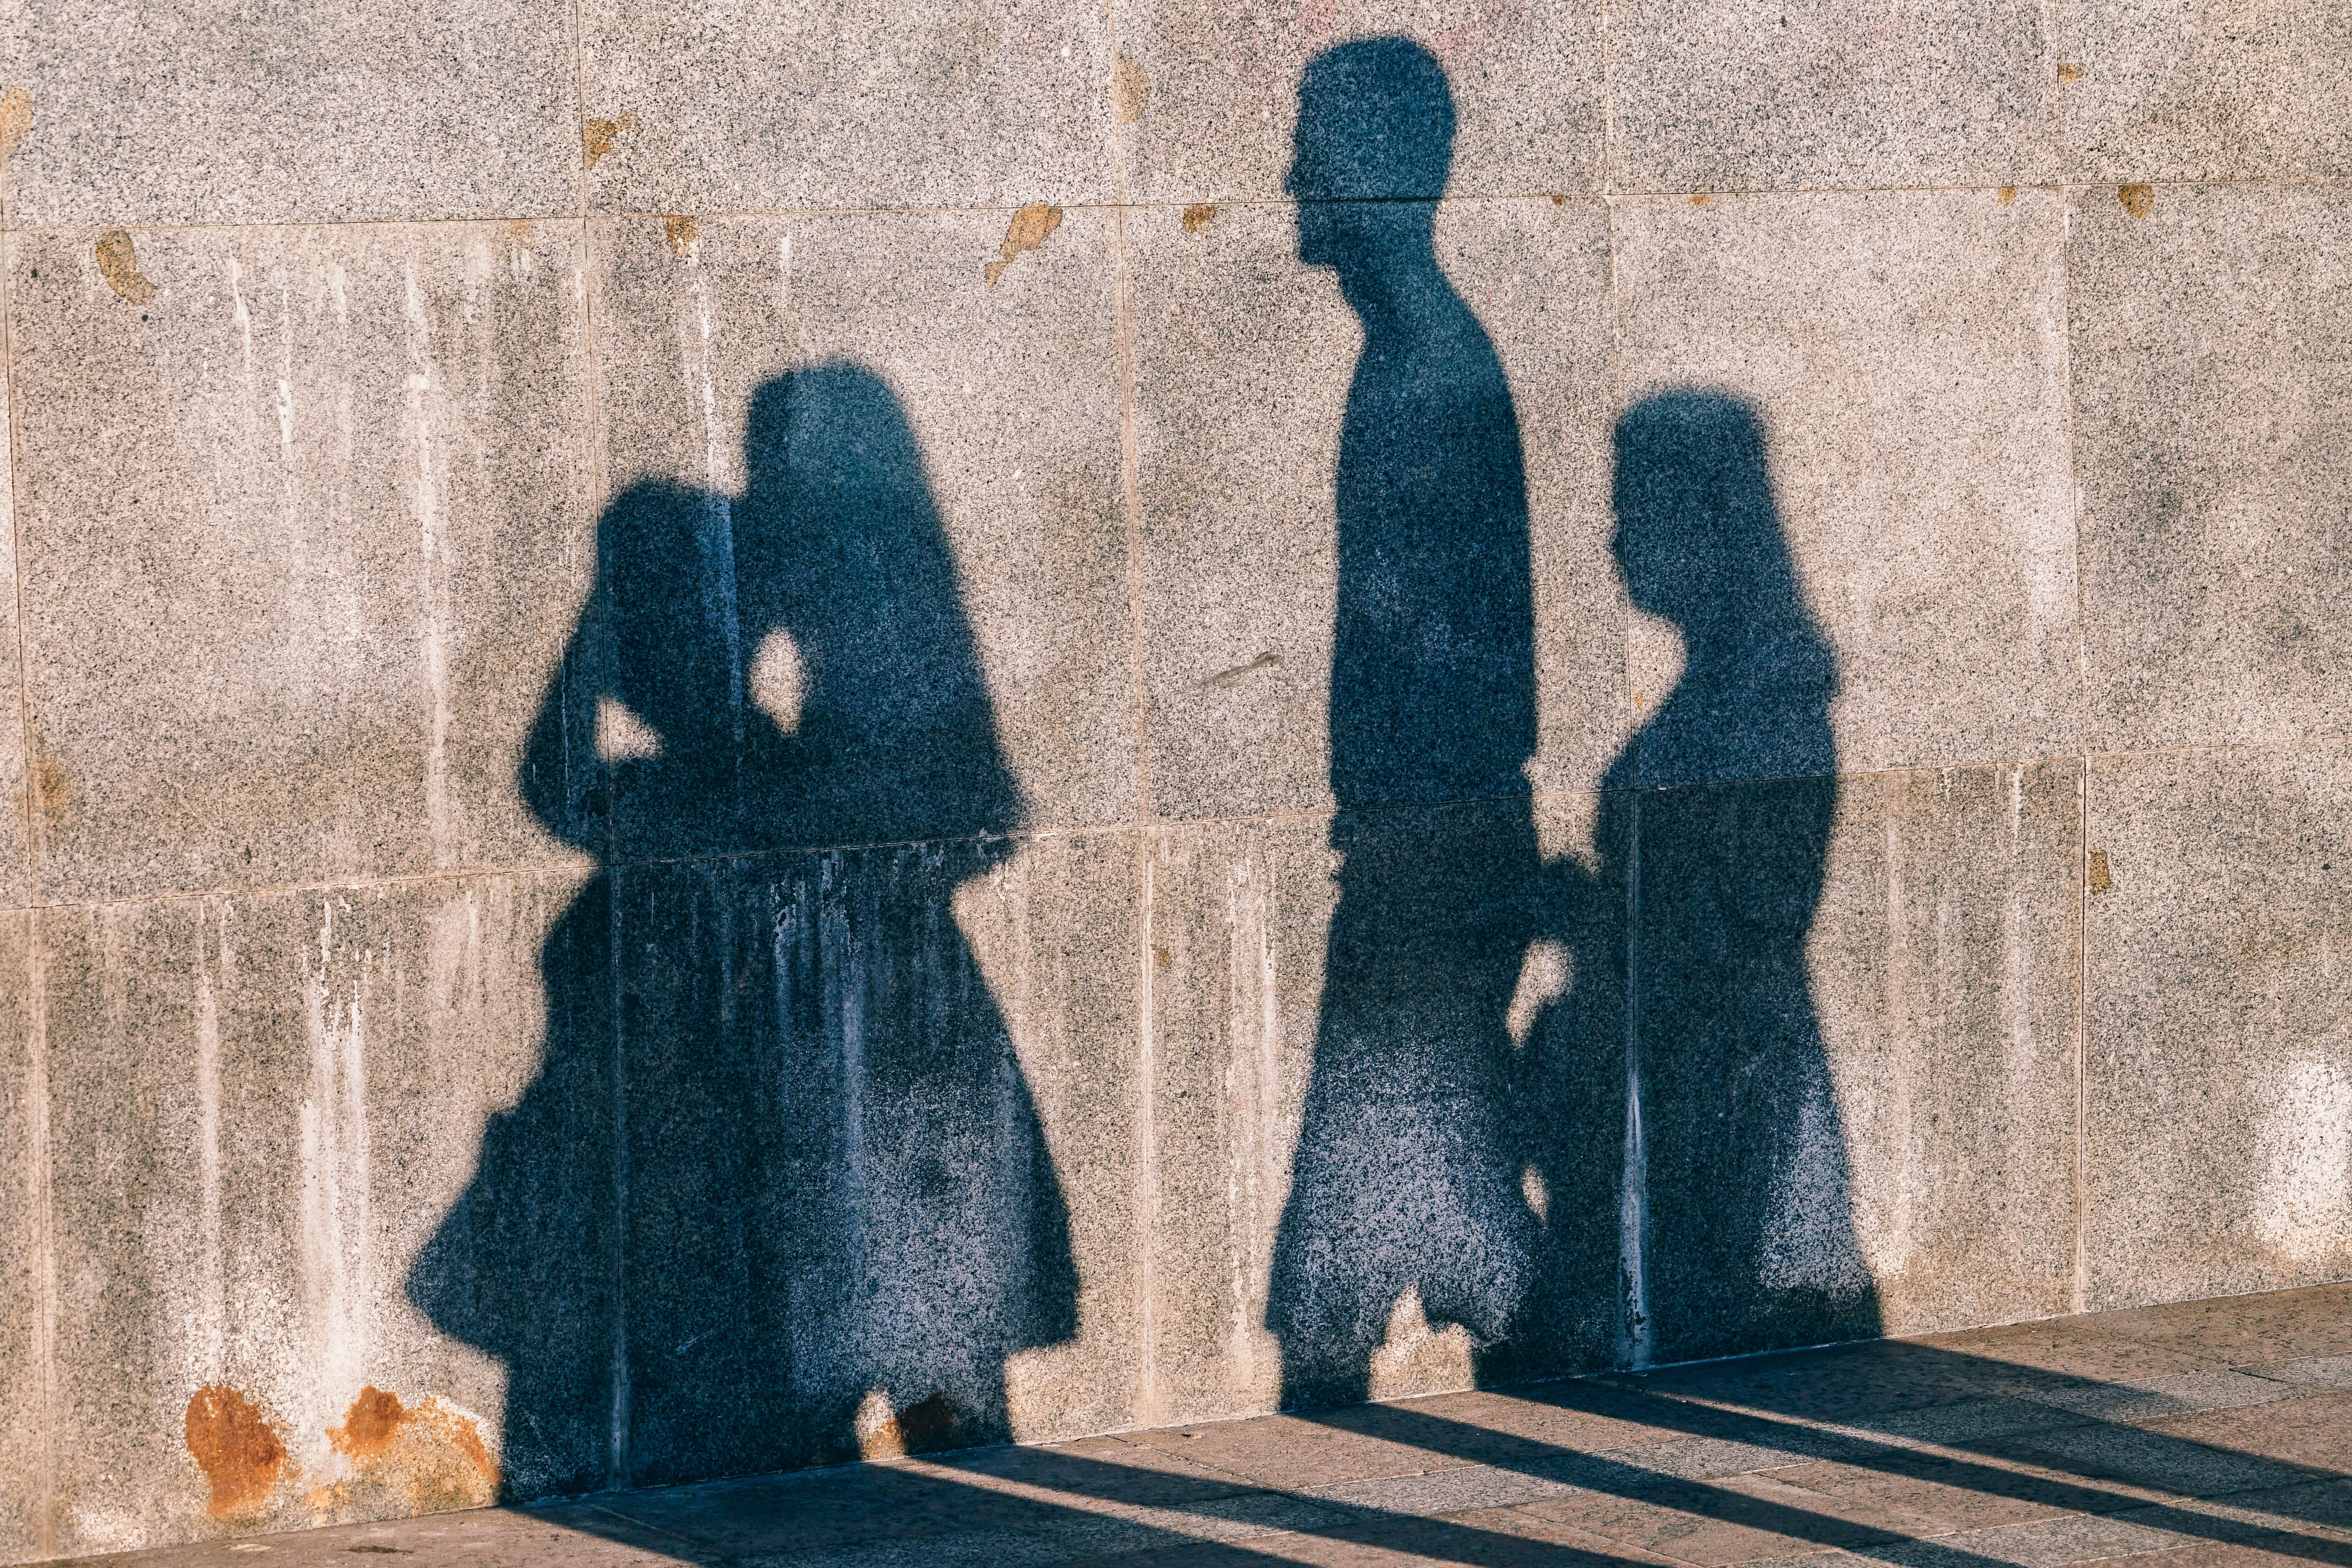 children's shadows on a grey wall